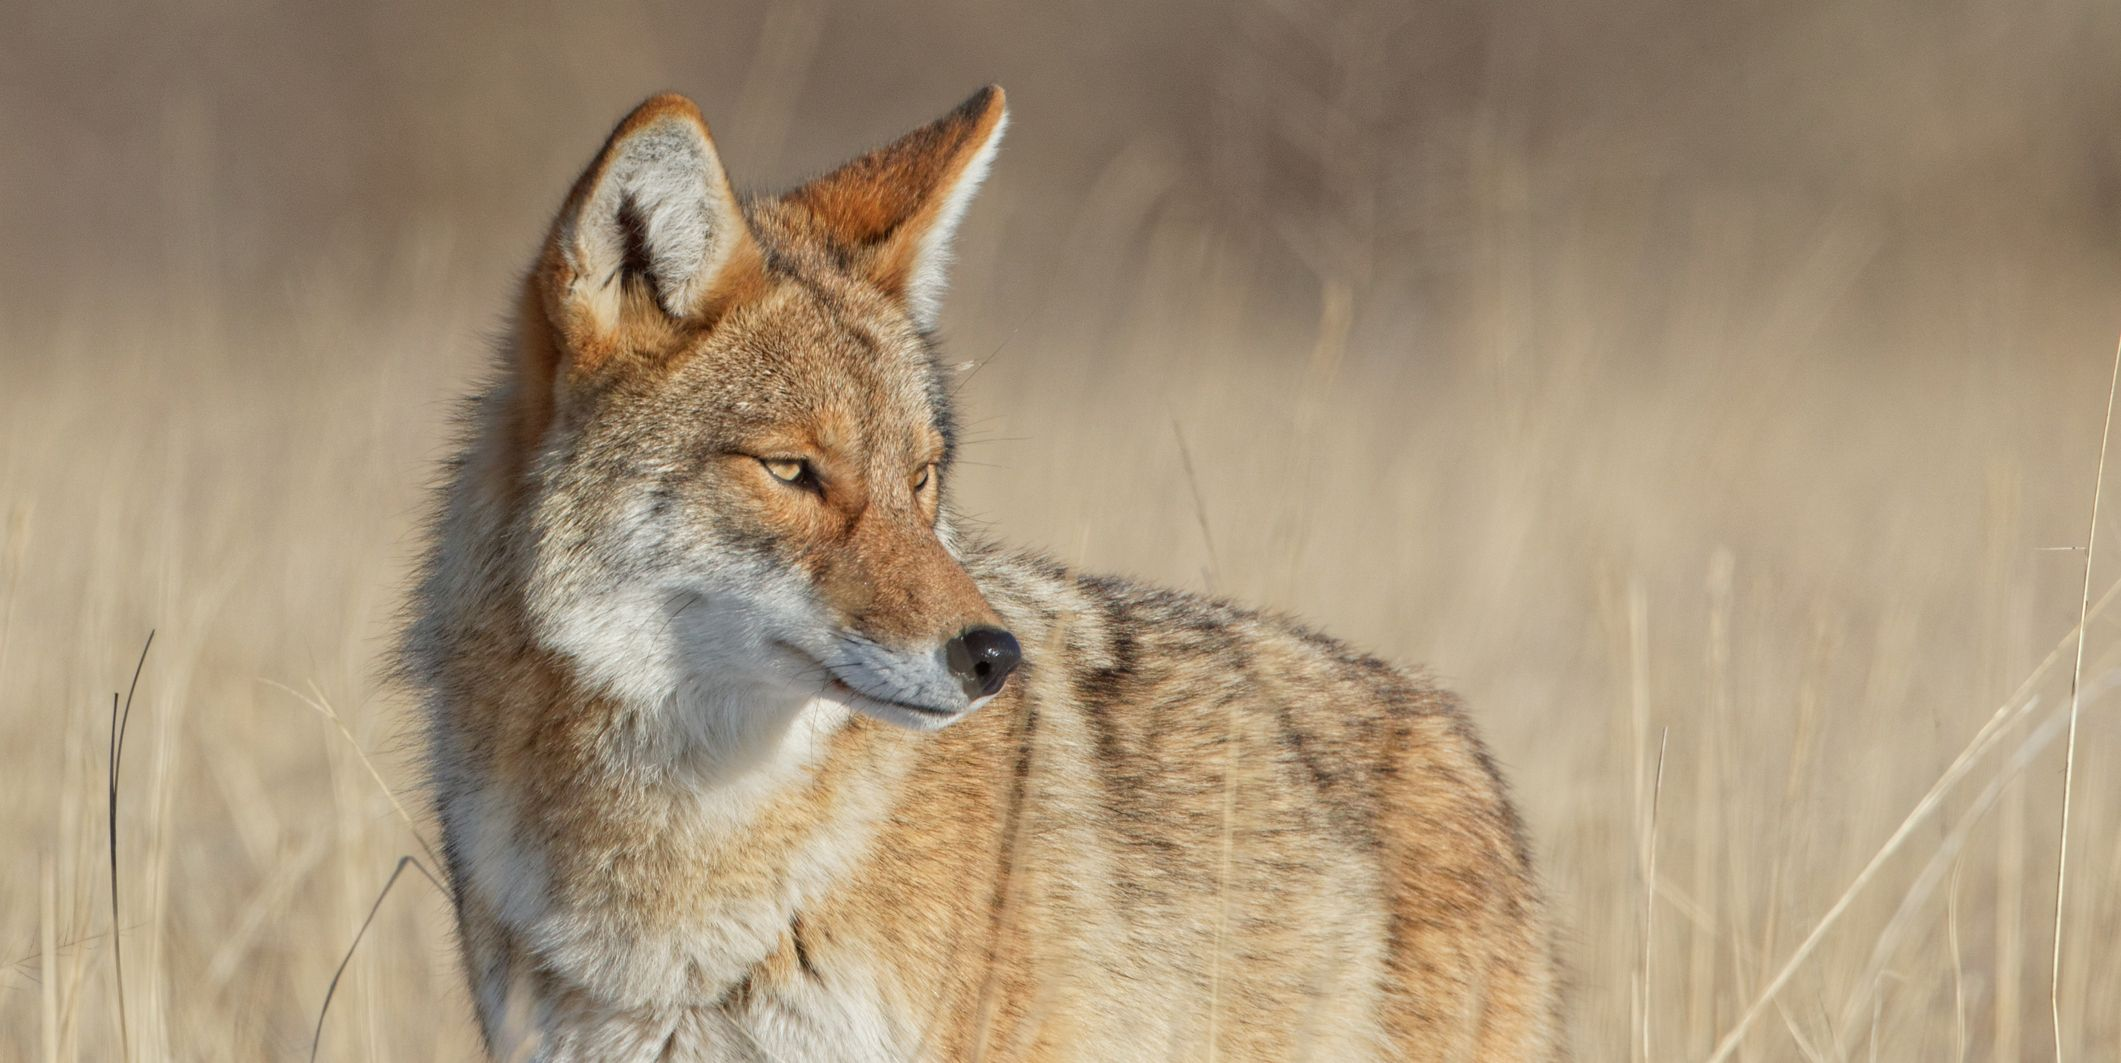 Alert Coyote Survey Surroundings In Beautiful Light